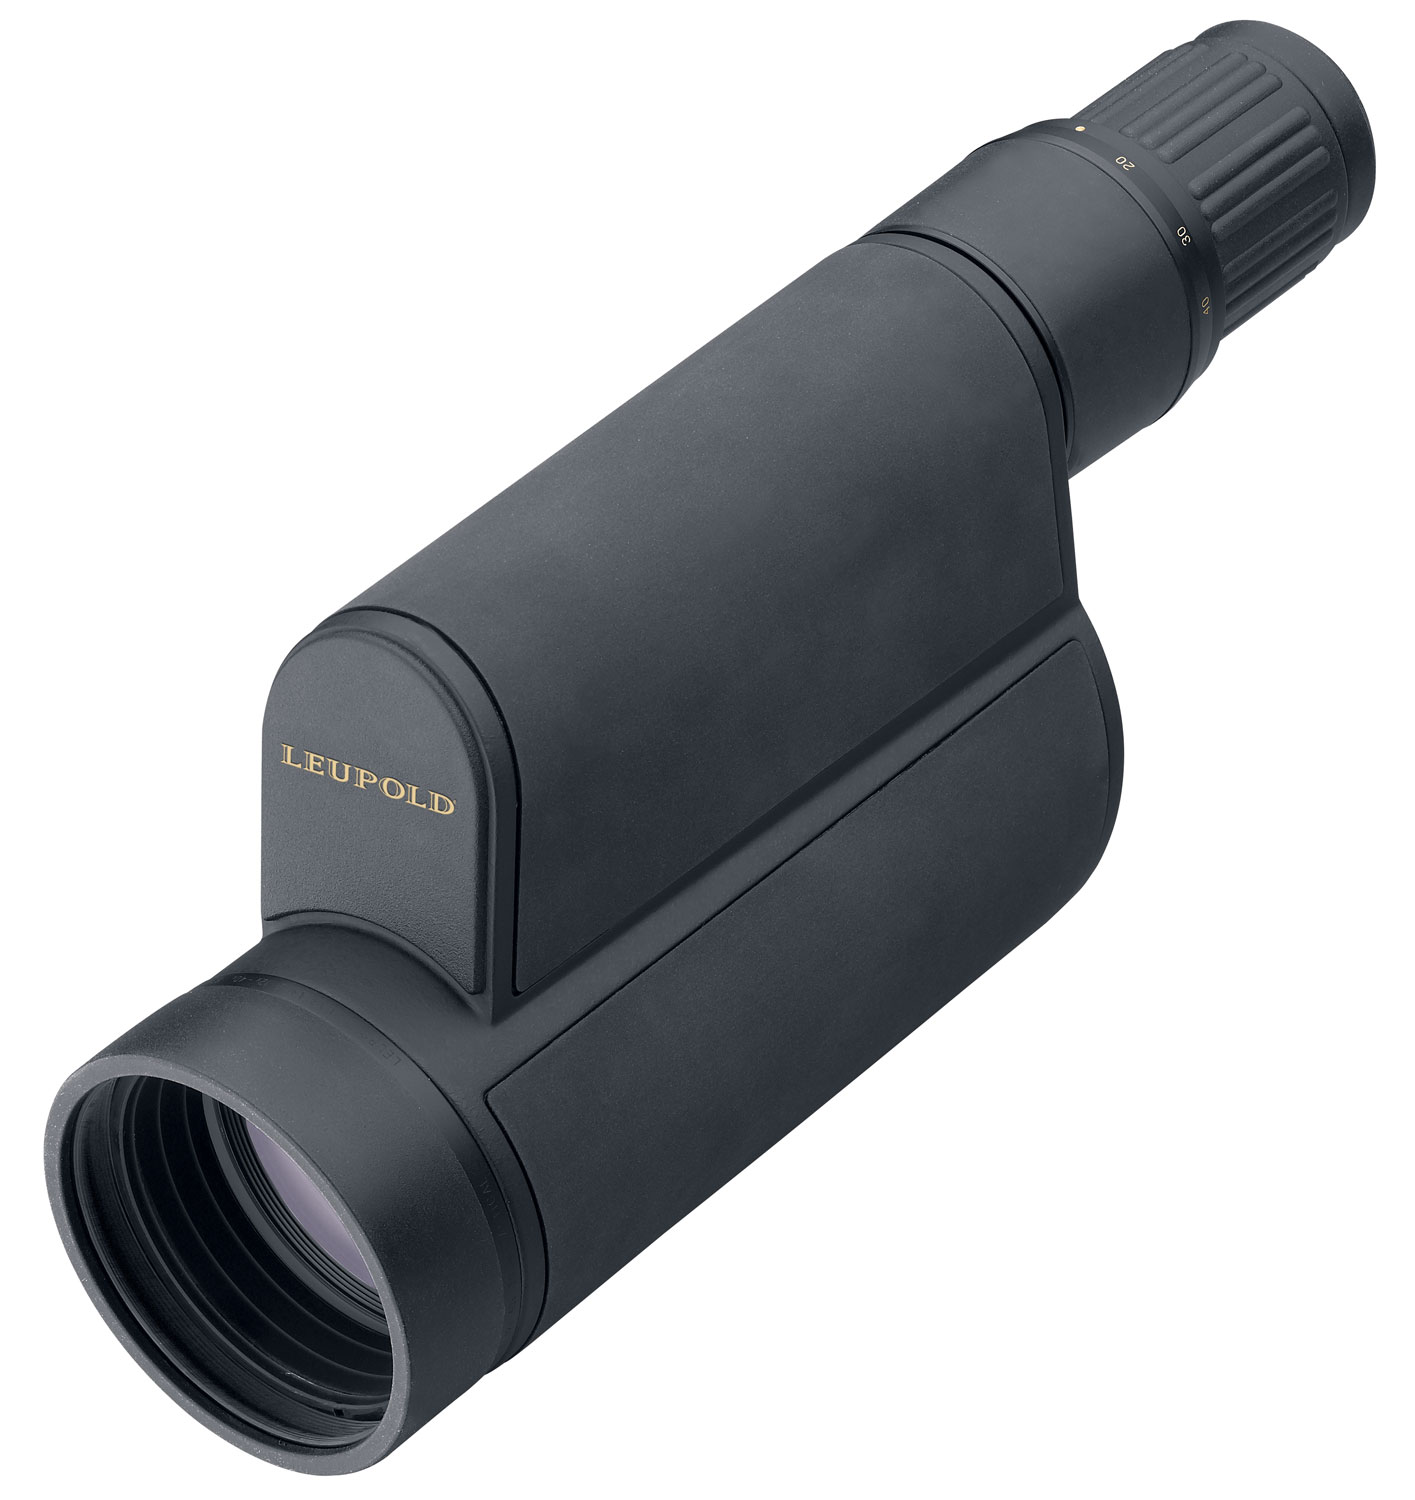 Leupold 53756 Mark 4 Tactical Spotting Scope 12-40x 60mm 3.2 degrees x 1.0 degrees FOV 1.18